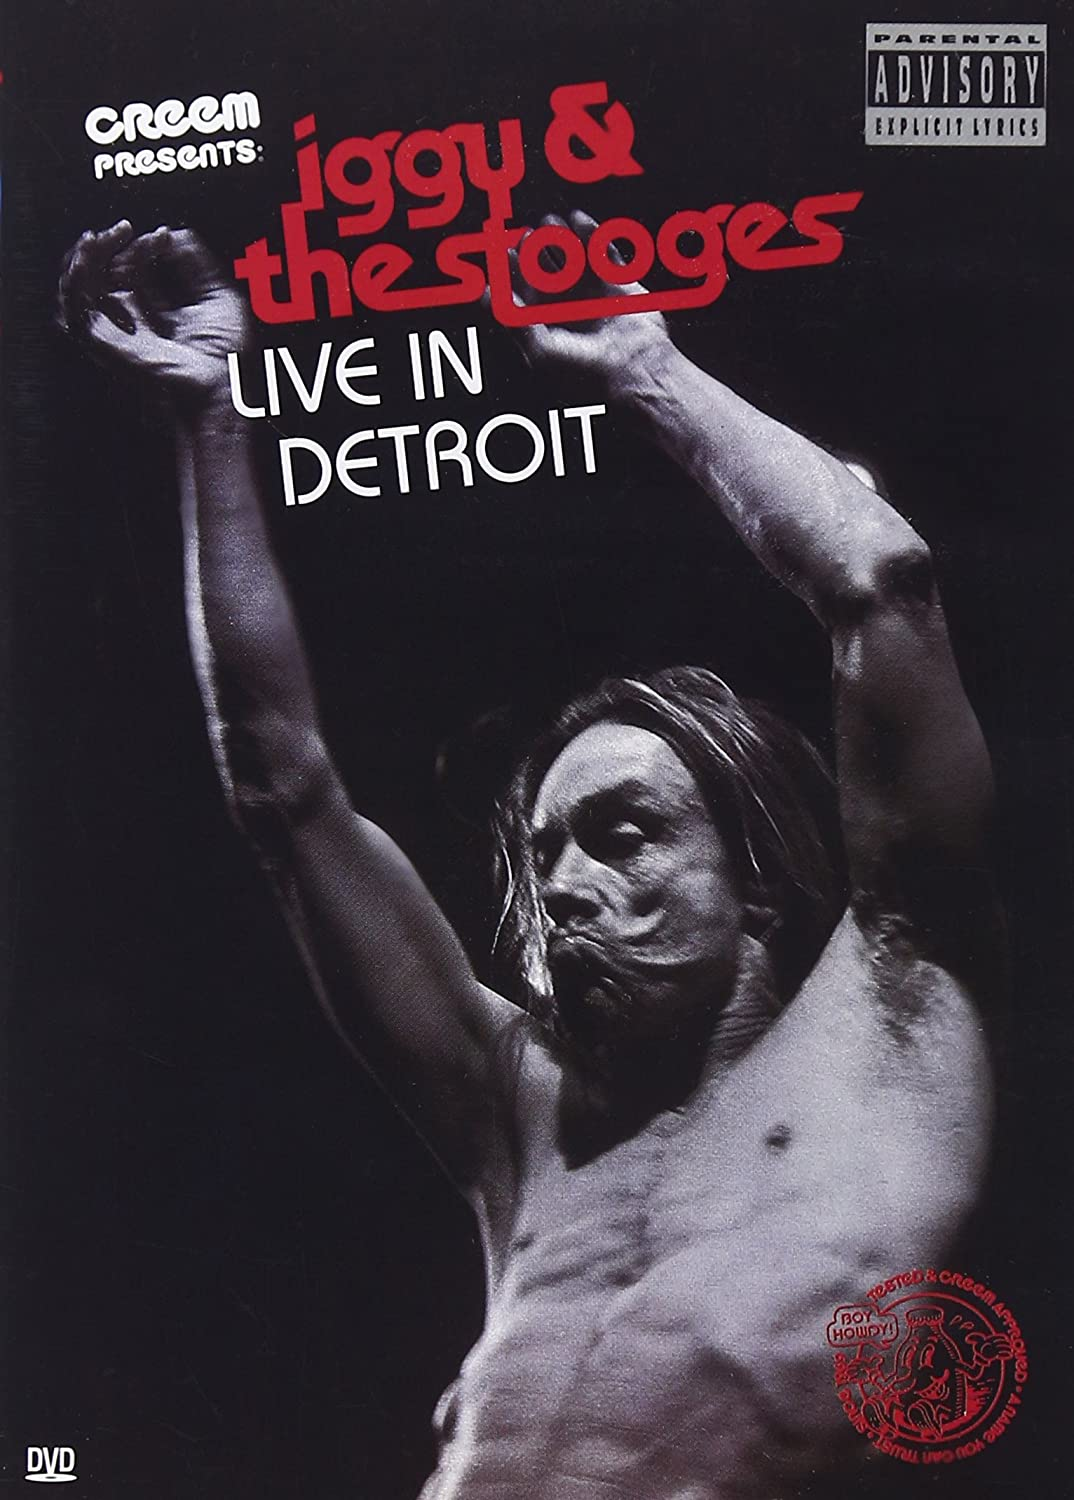 Download the stooges discography (1969 2013).